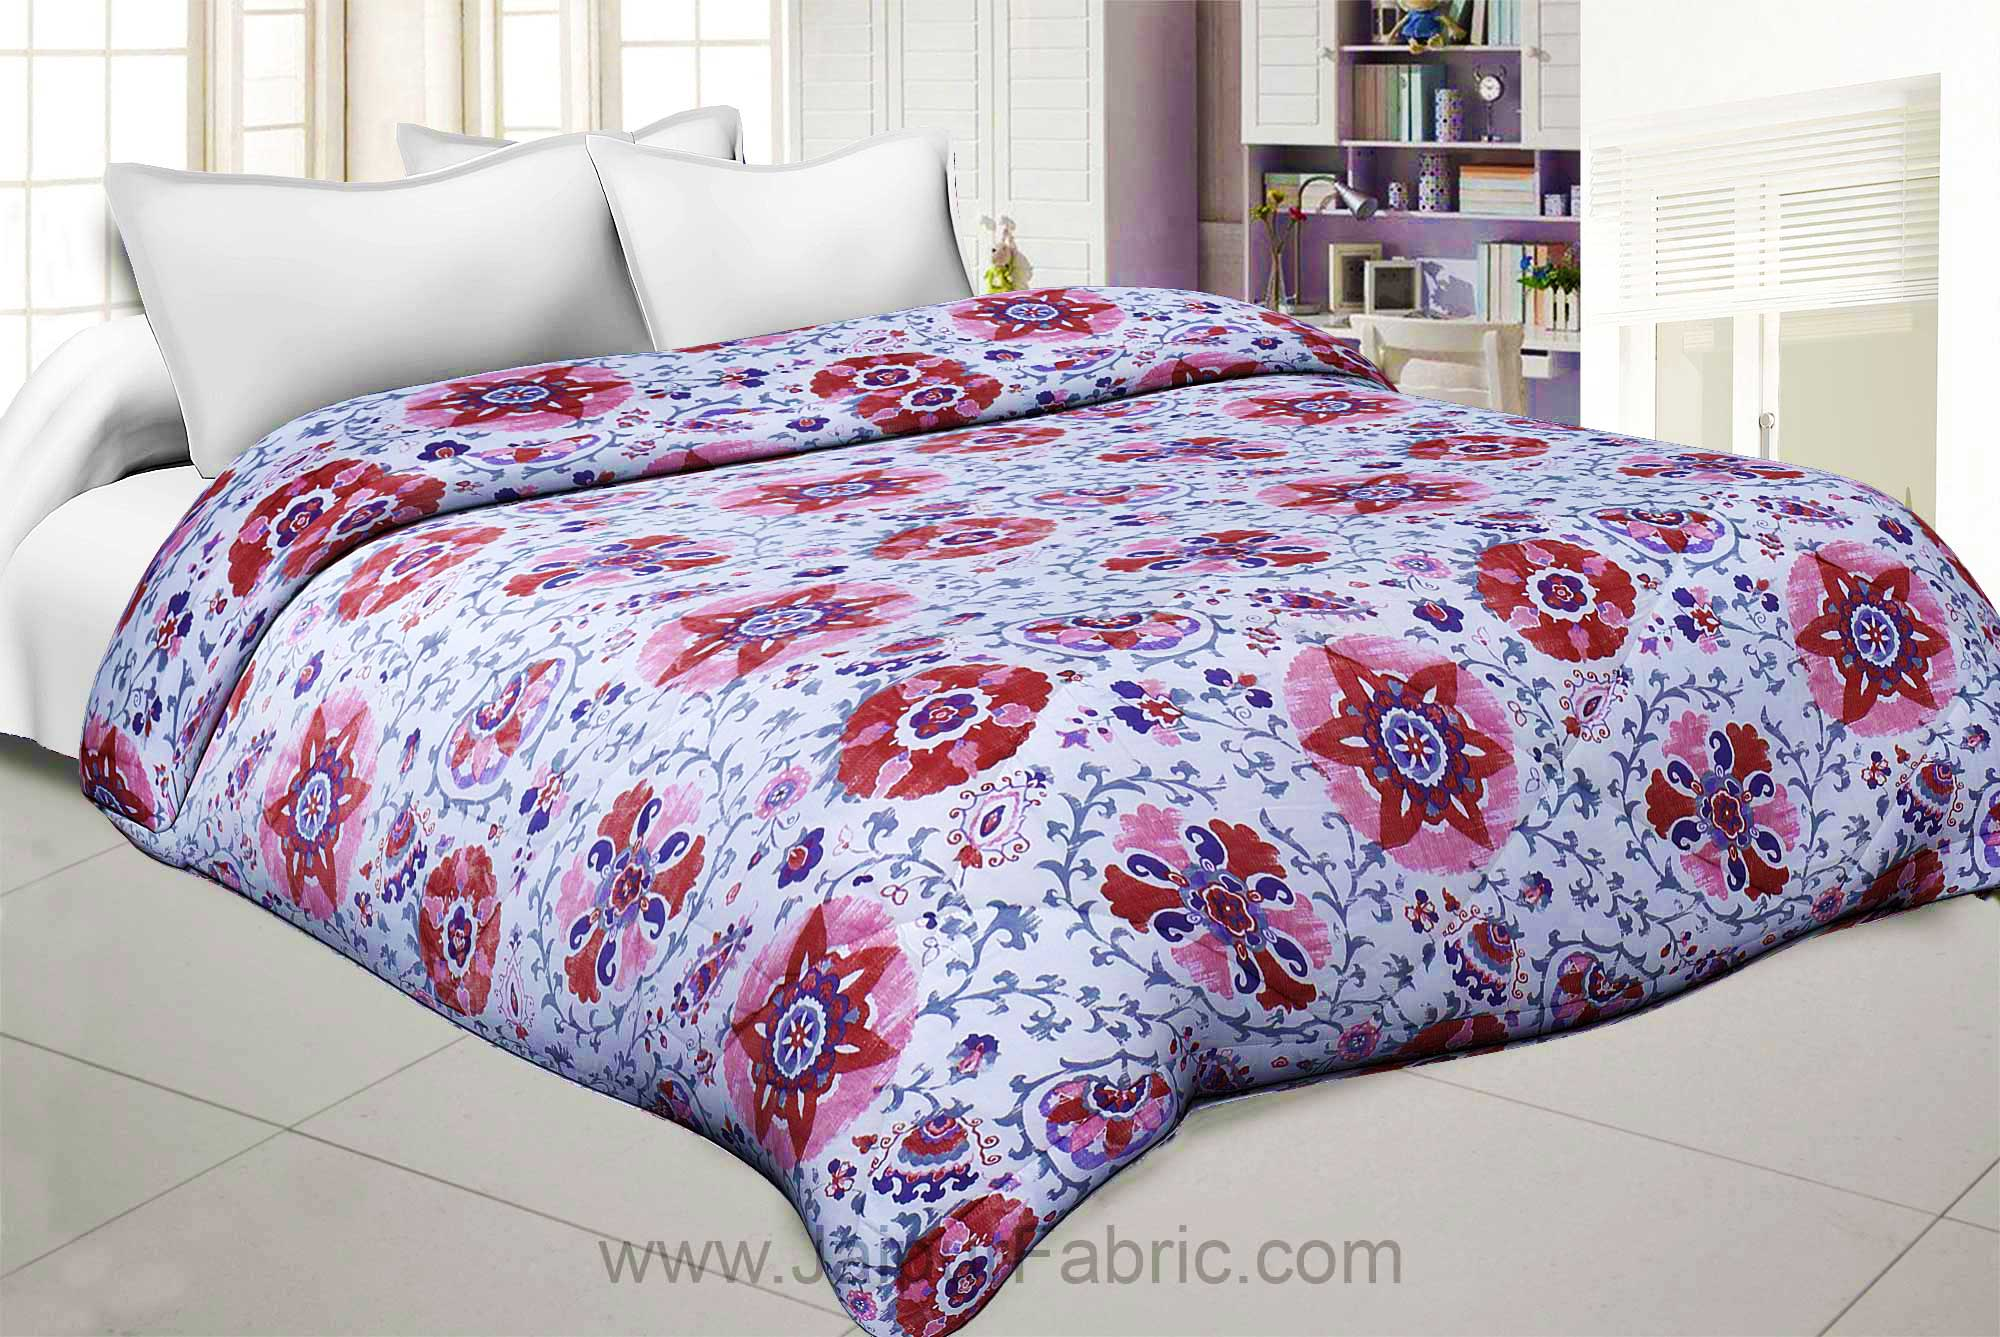 Pink Daffodil King Size Double Comforter